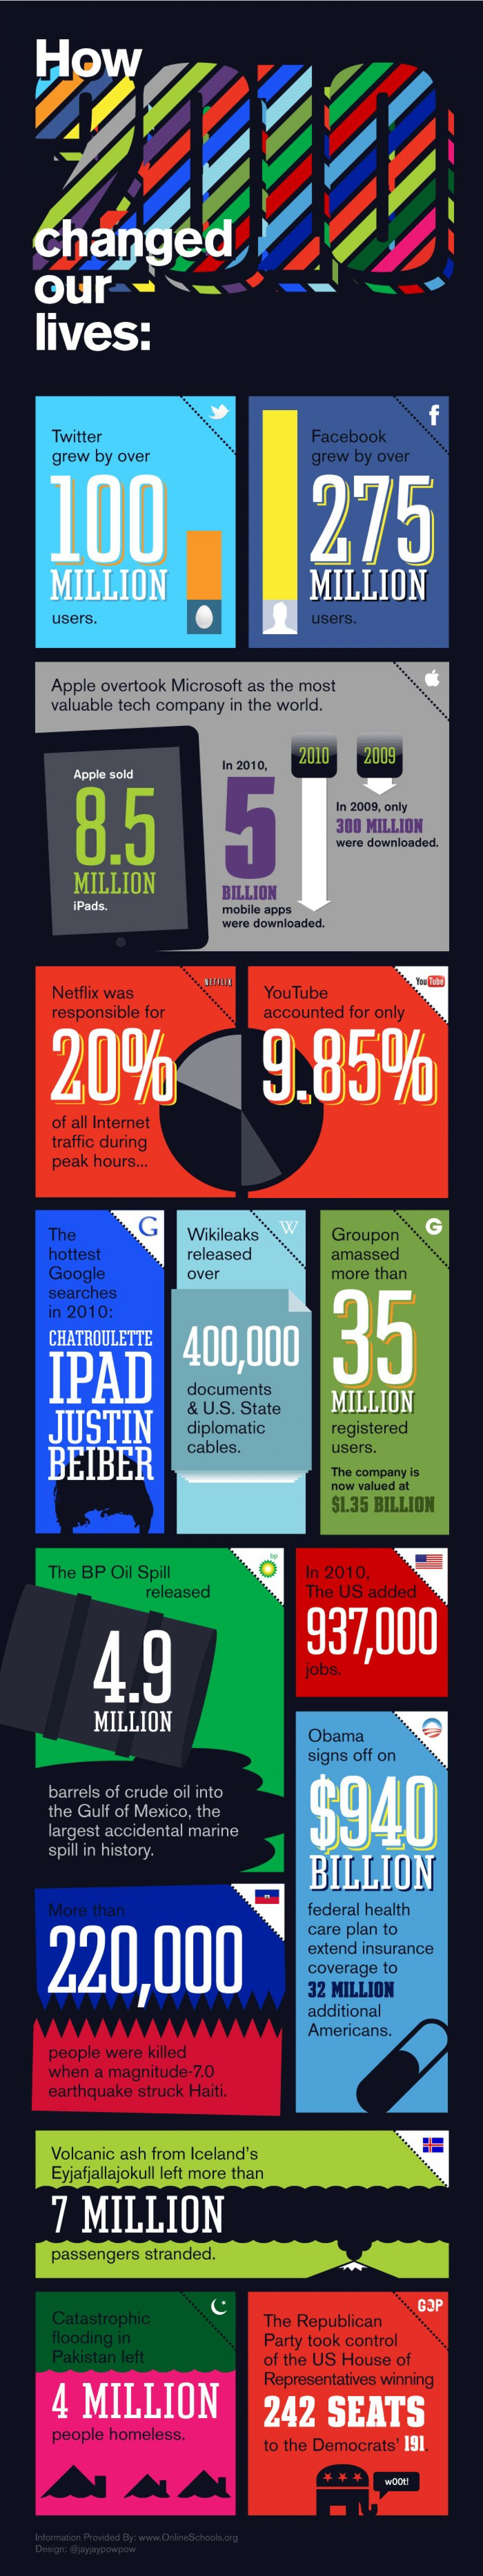 How 2010 Changed Our Lives Infographic